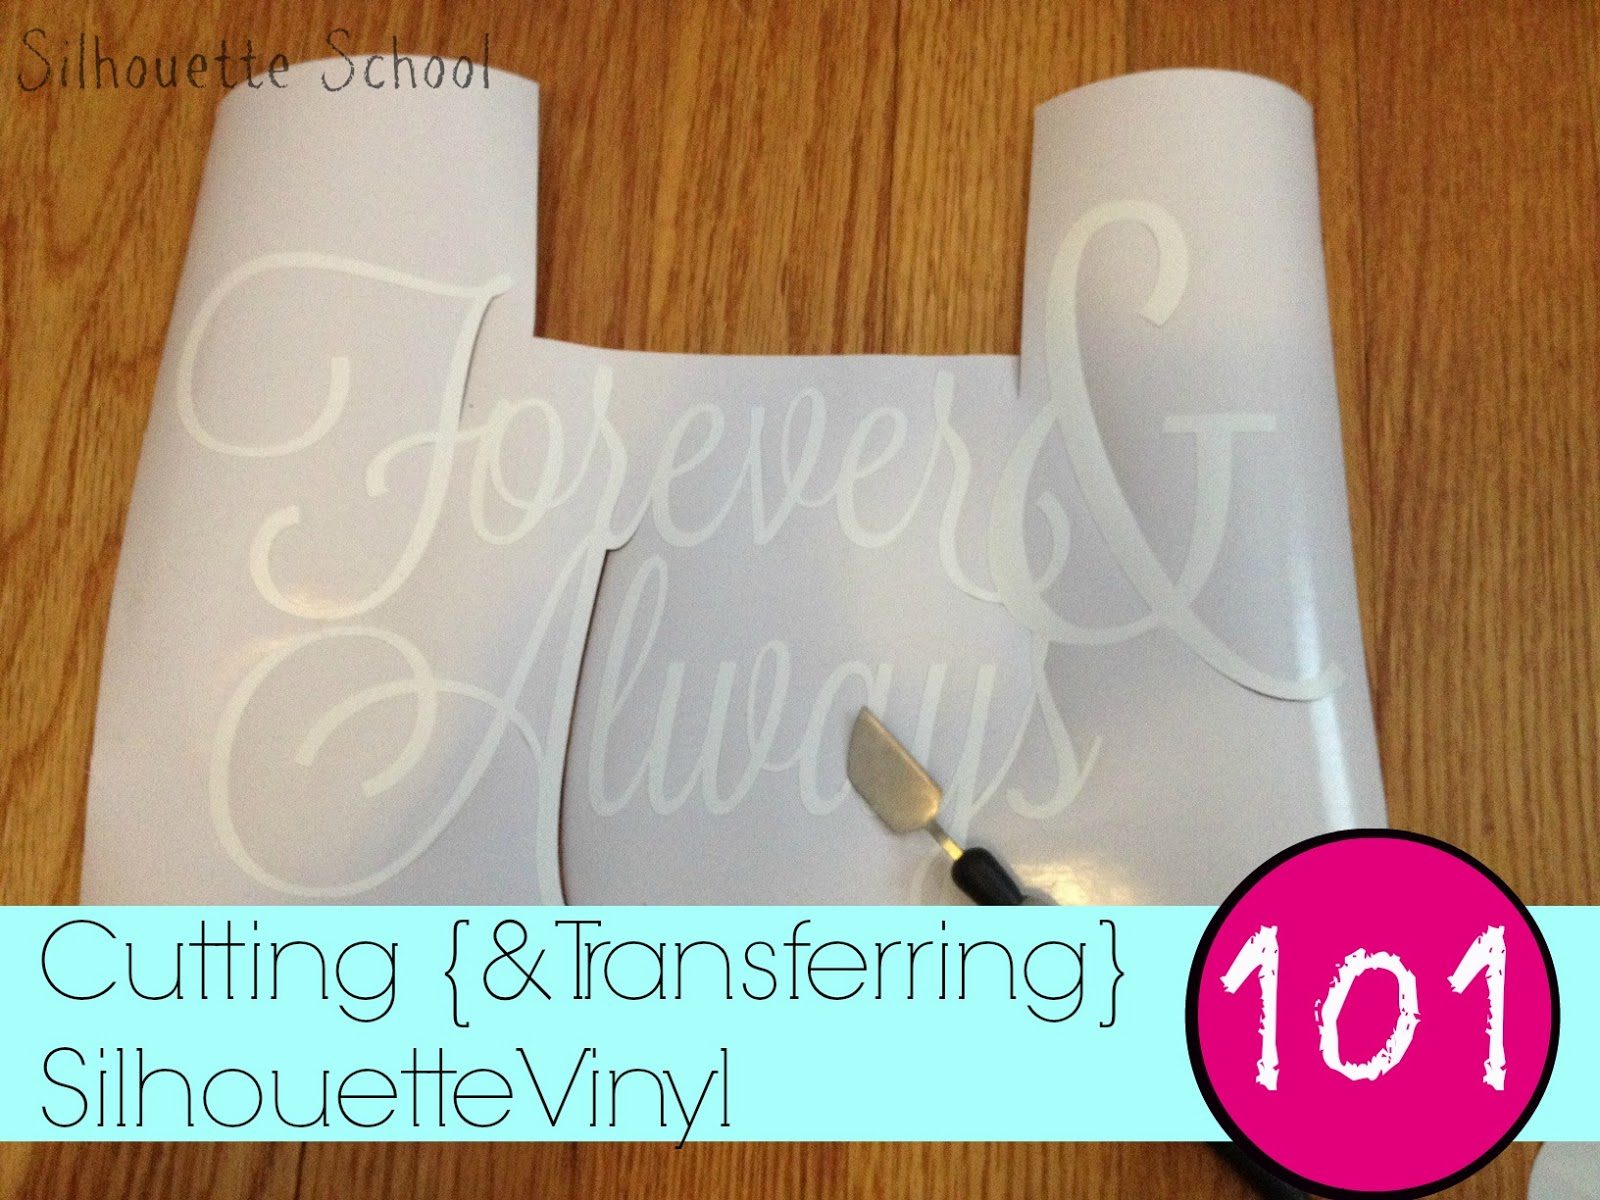 Cutting Vinyl With Silhouette CAMEO For Beginners Silhouette School - How to make vinyl decals with silhouette cameo